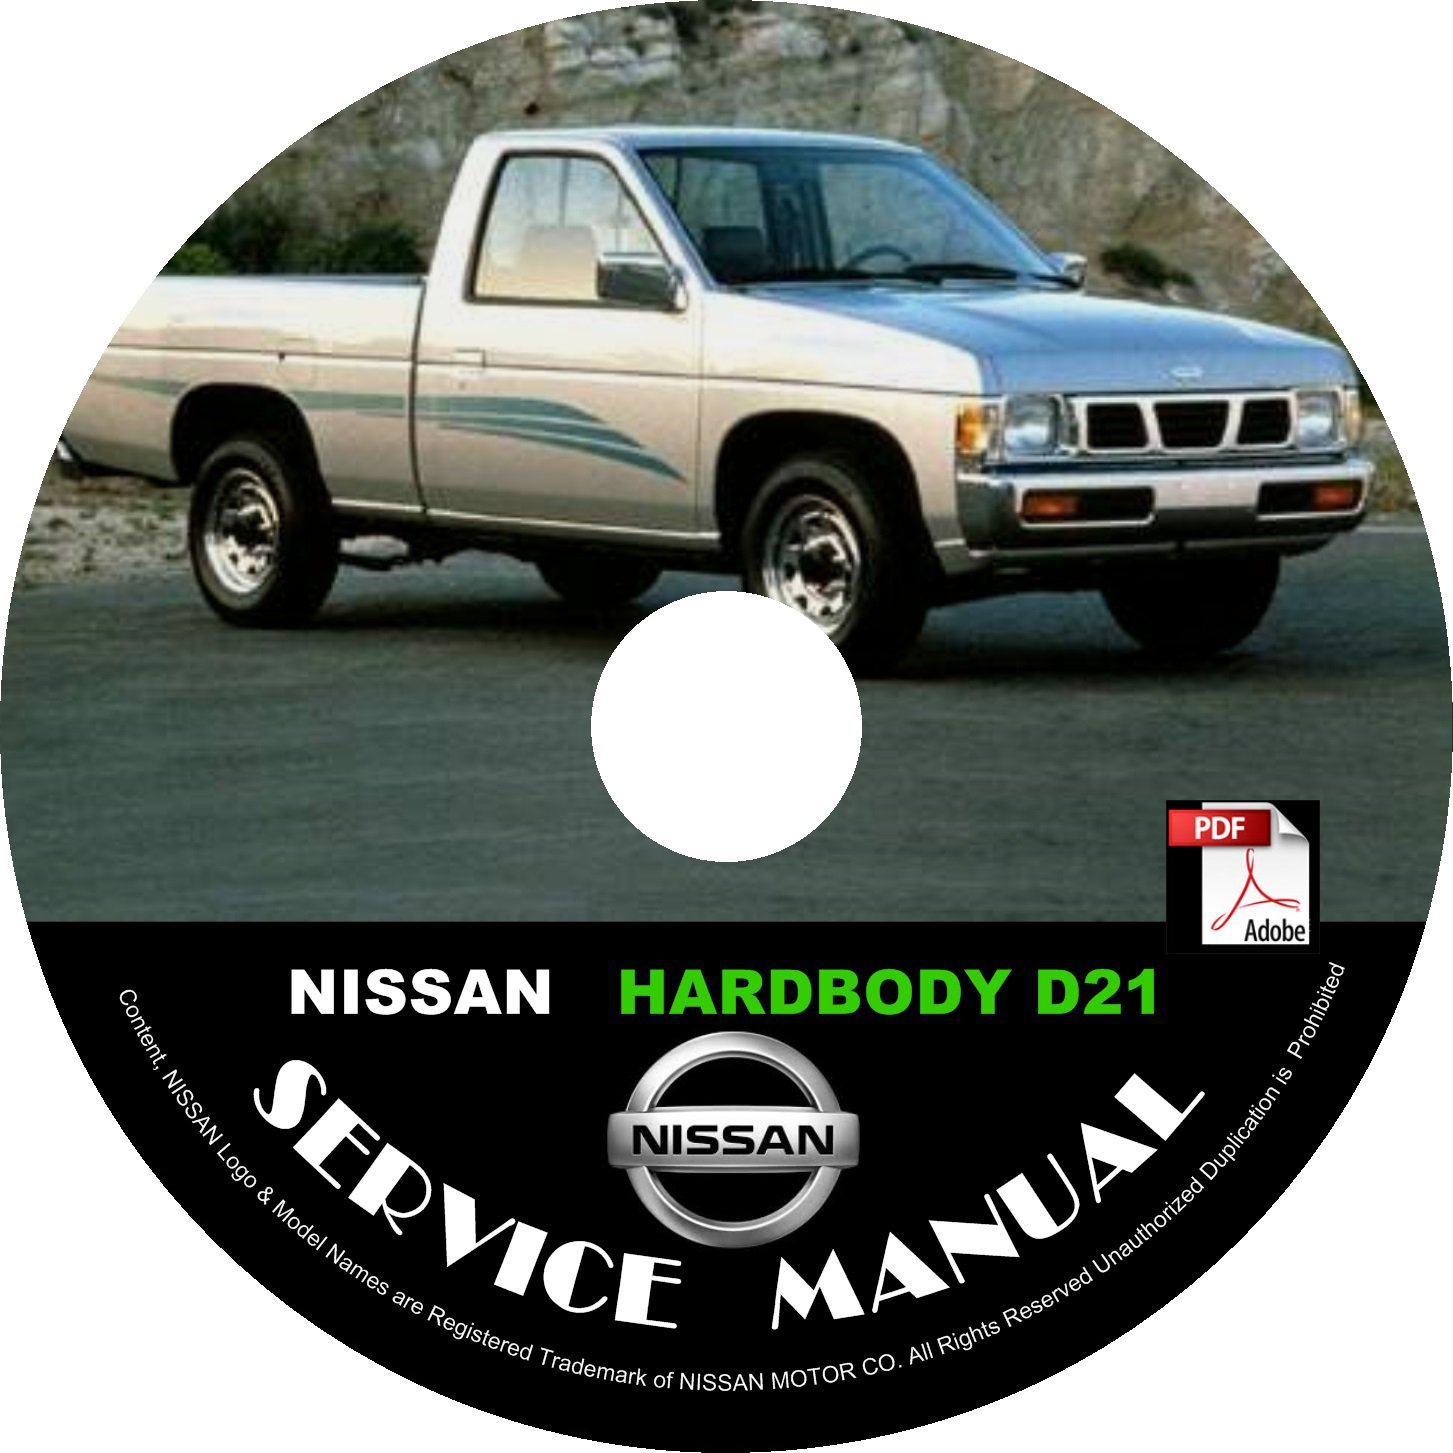 1996 96 Nissan Hardbody Pickup Service Repair Shop Manual on CD Fix Repair Rebuild '96 Workshop